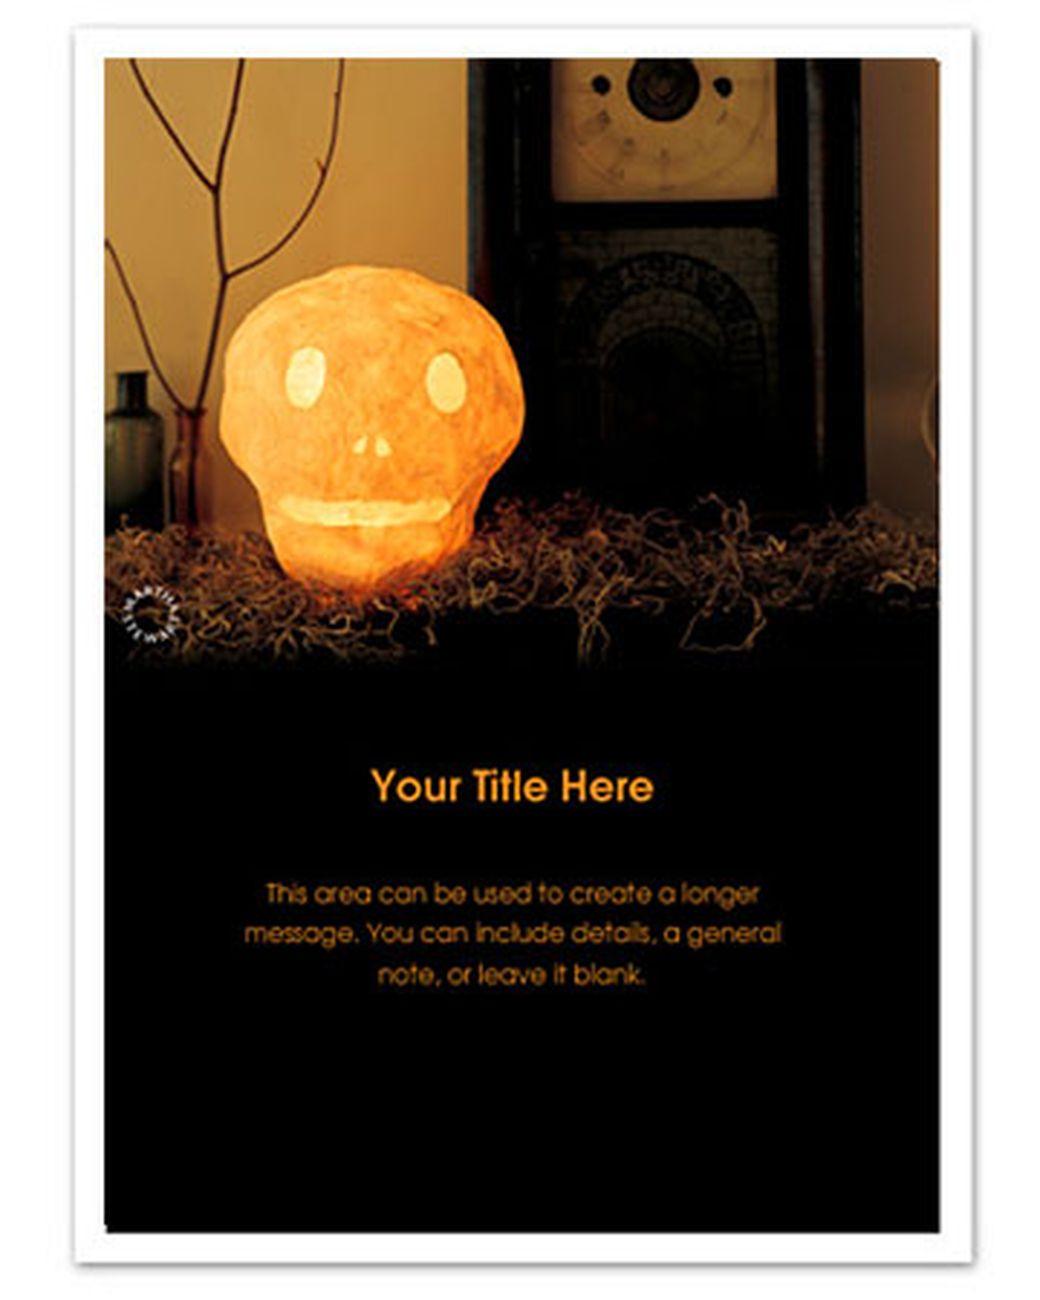 Online Invitations For Your Halloween Party Online Invitations Halloween Invitations Halloween Party